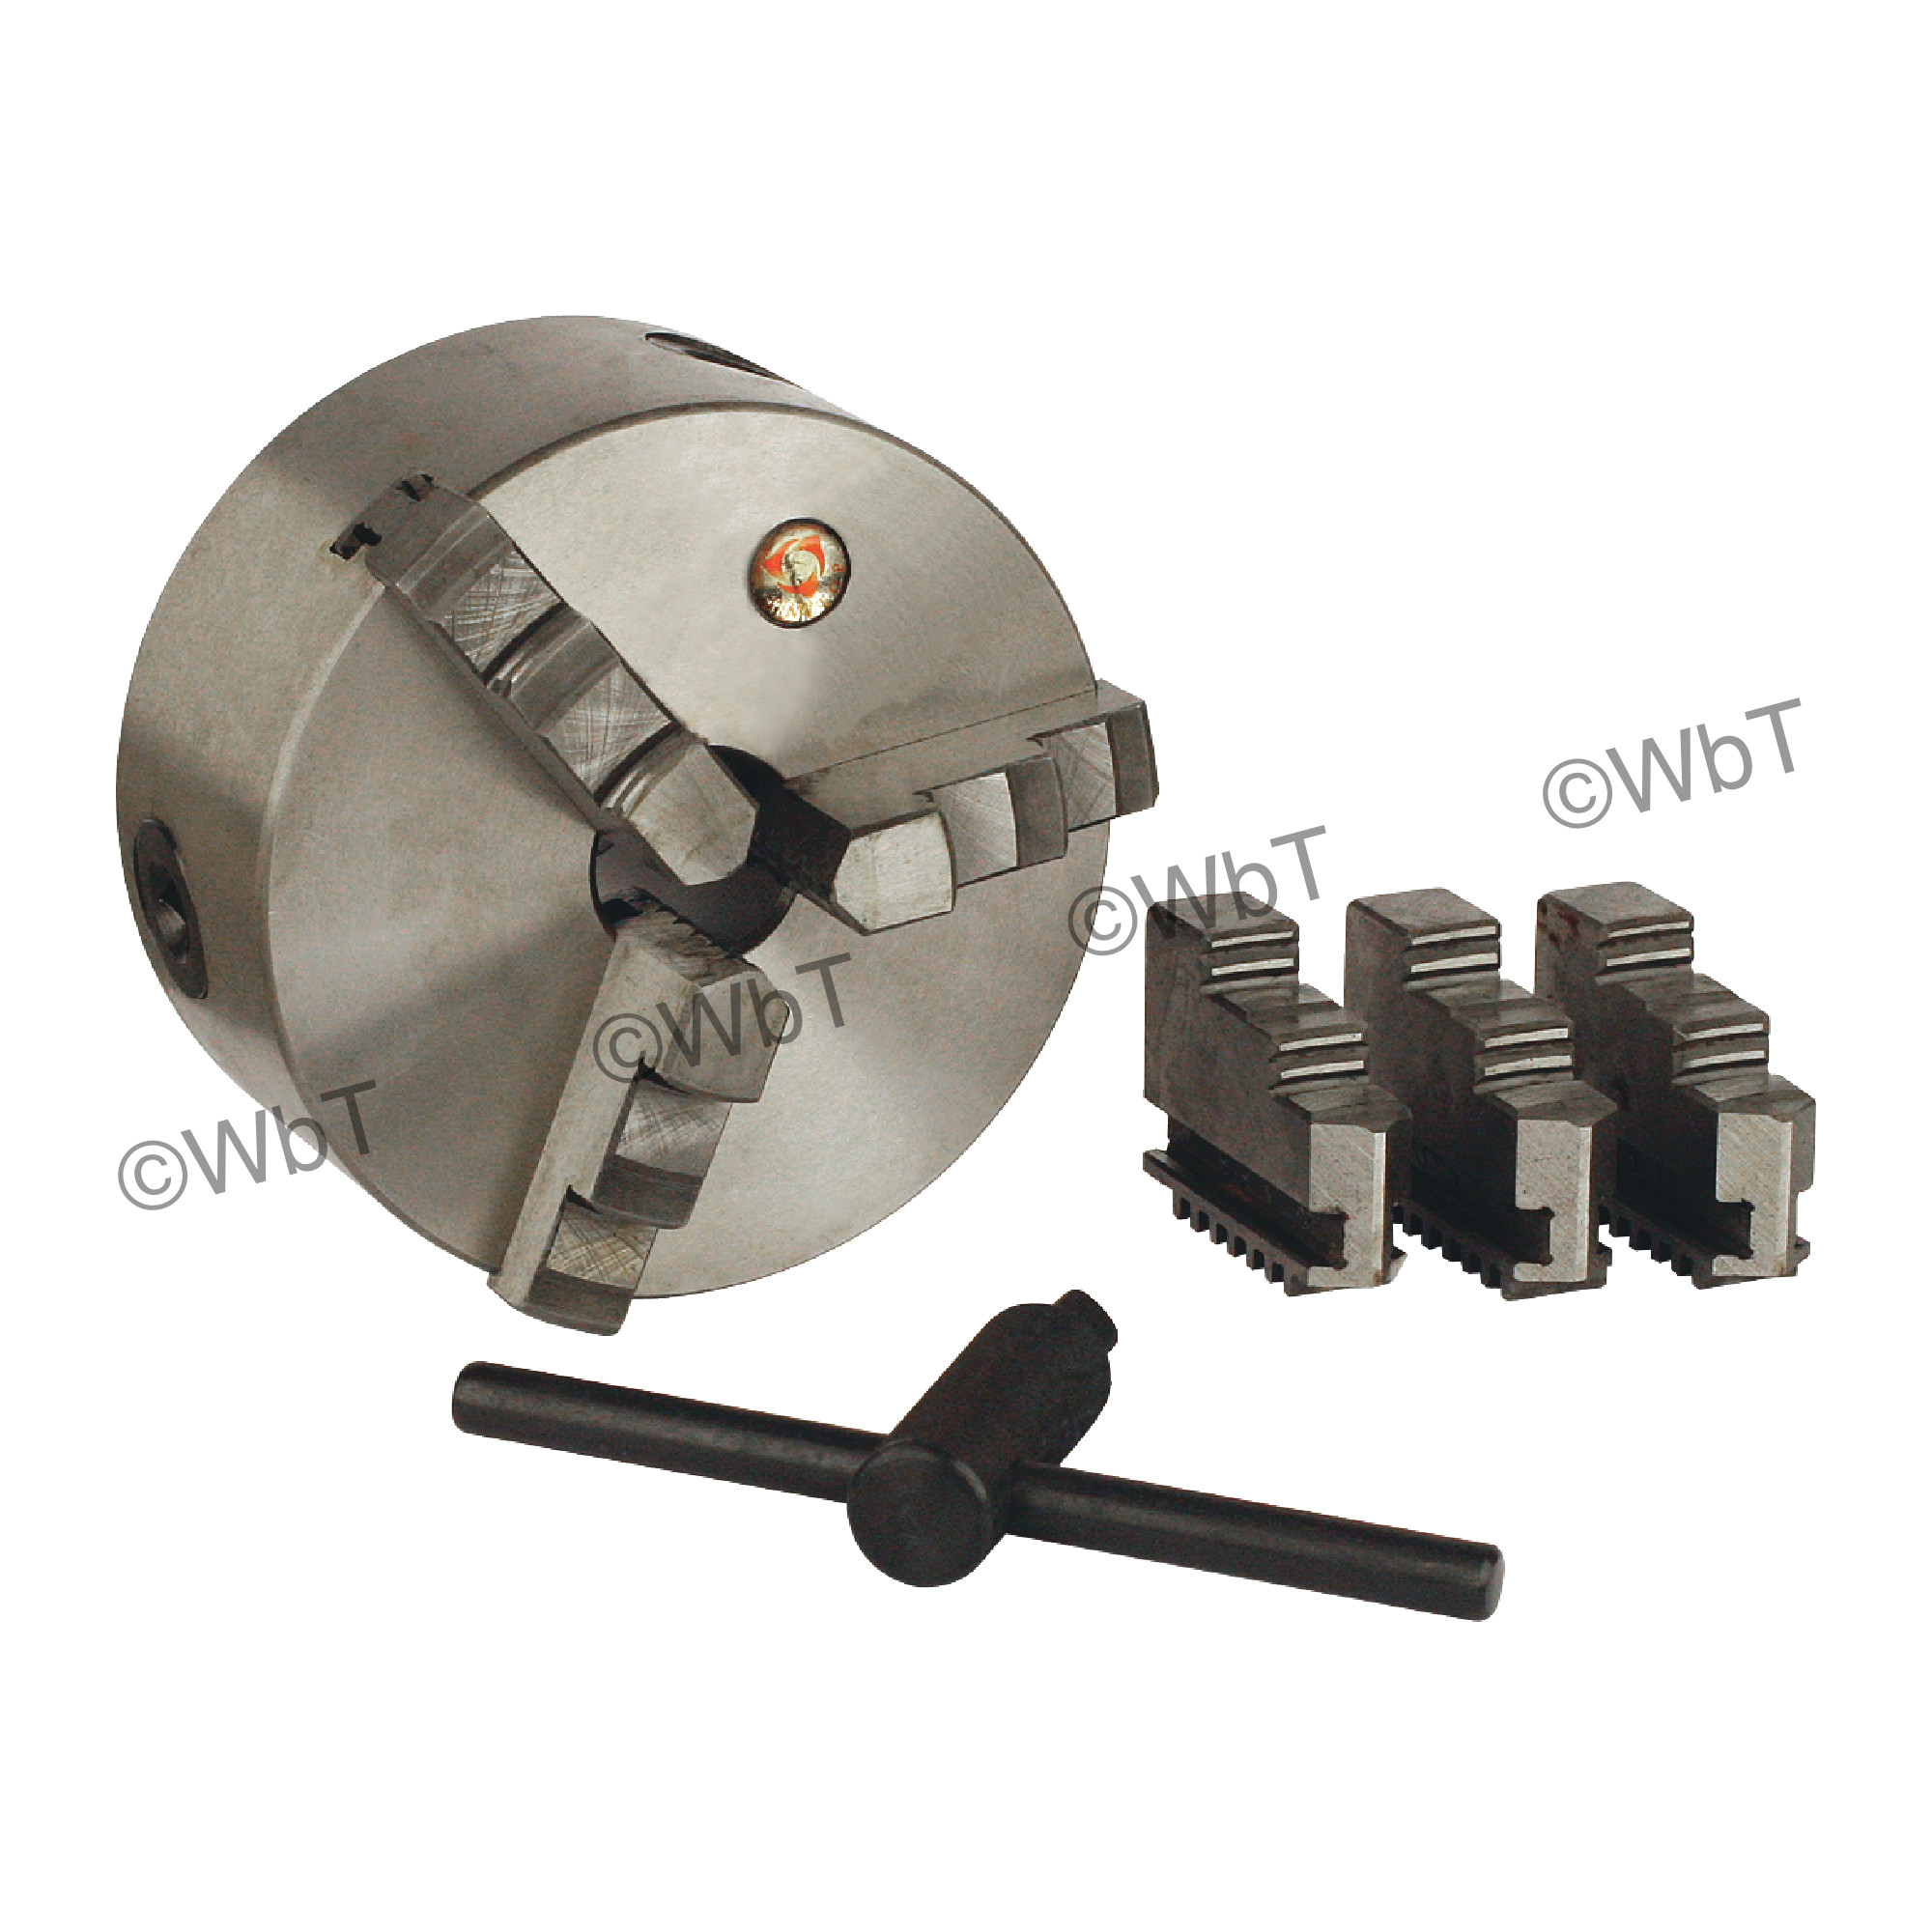 3 Jaw Chuck For OT25531 Combination Lathe